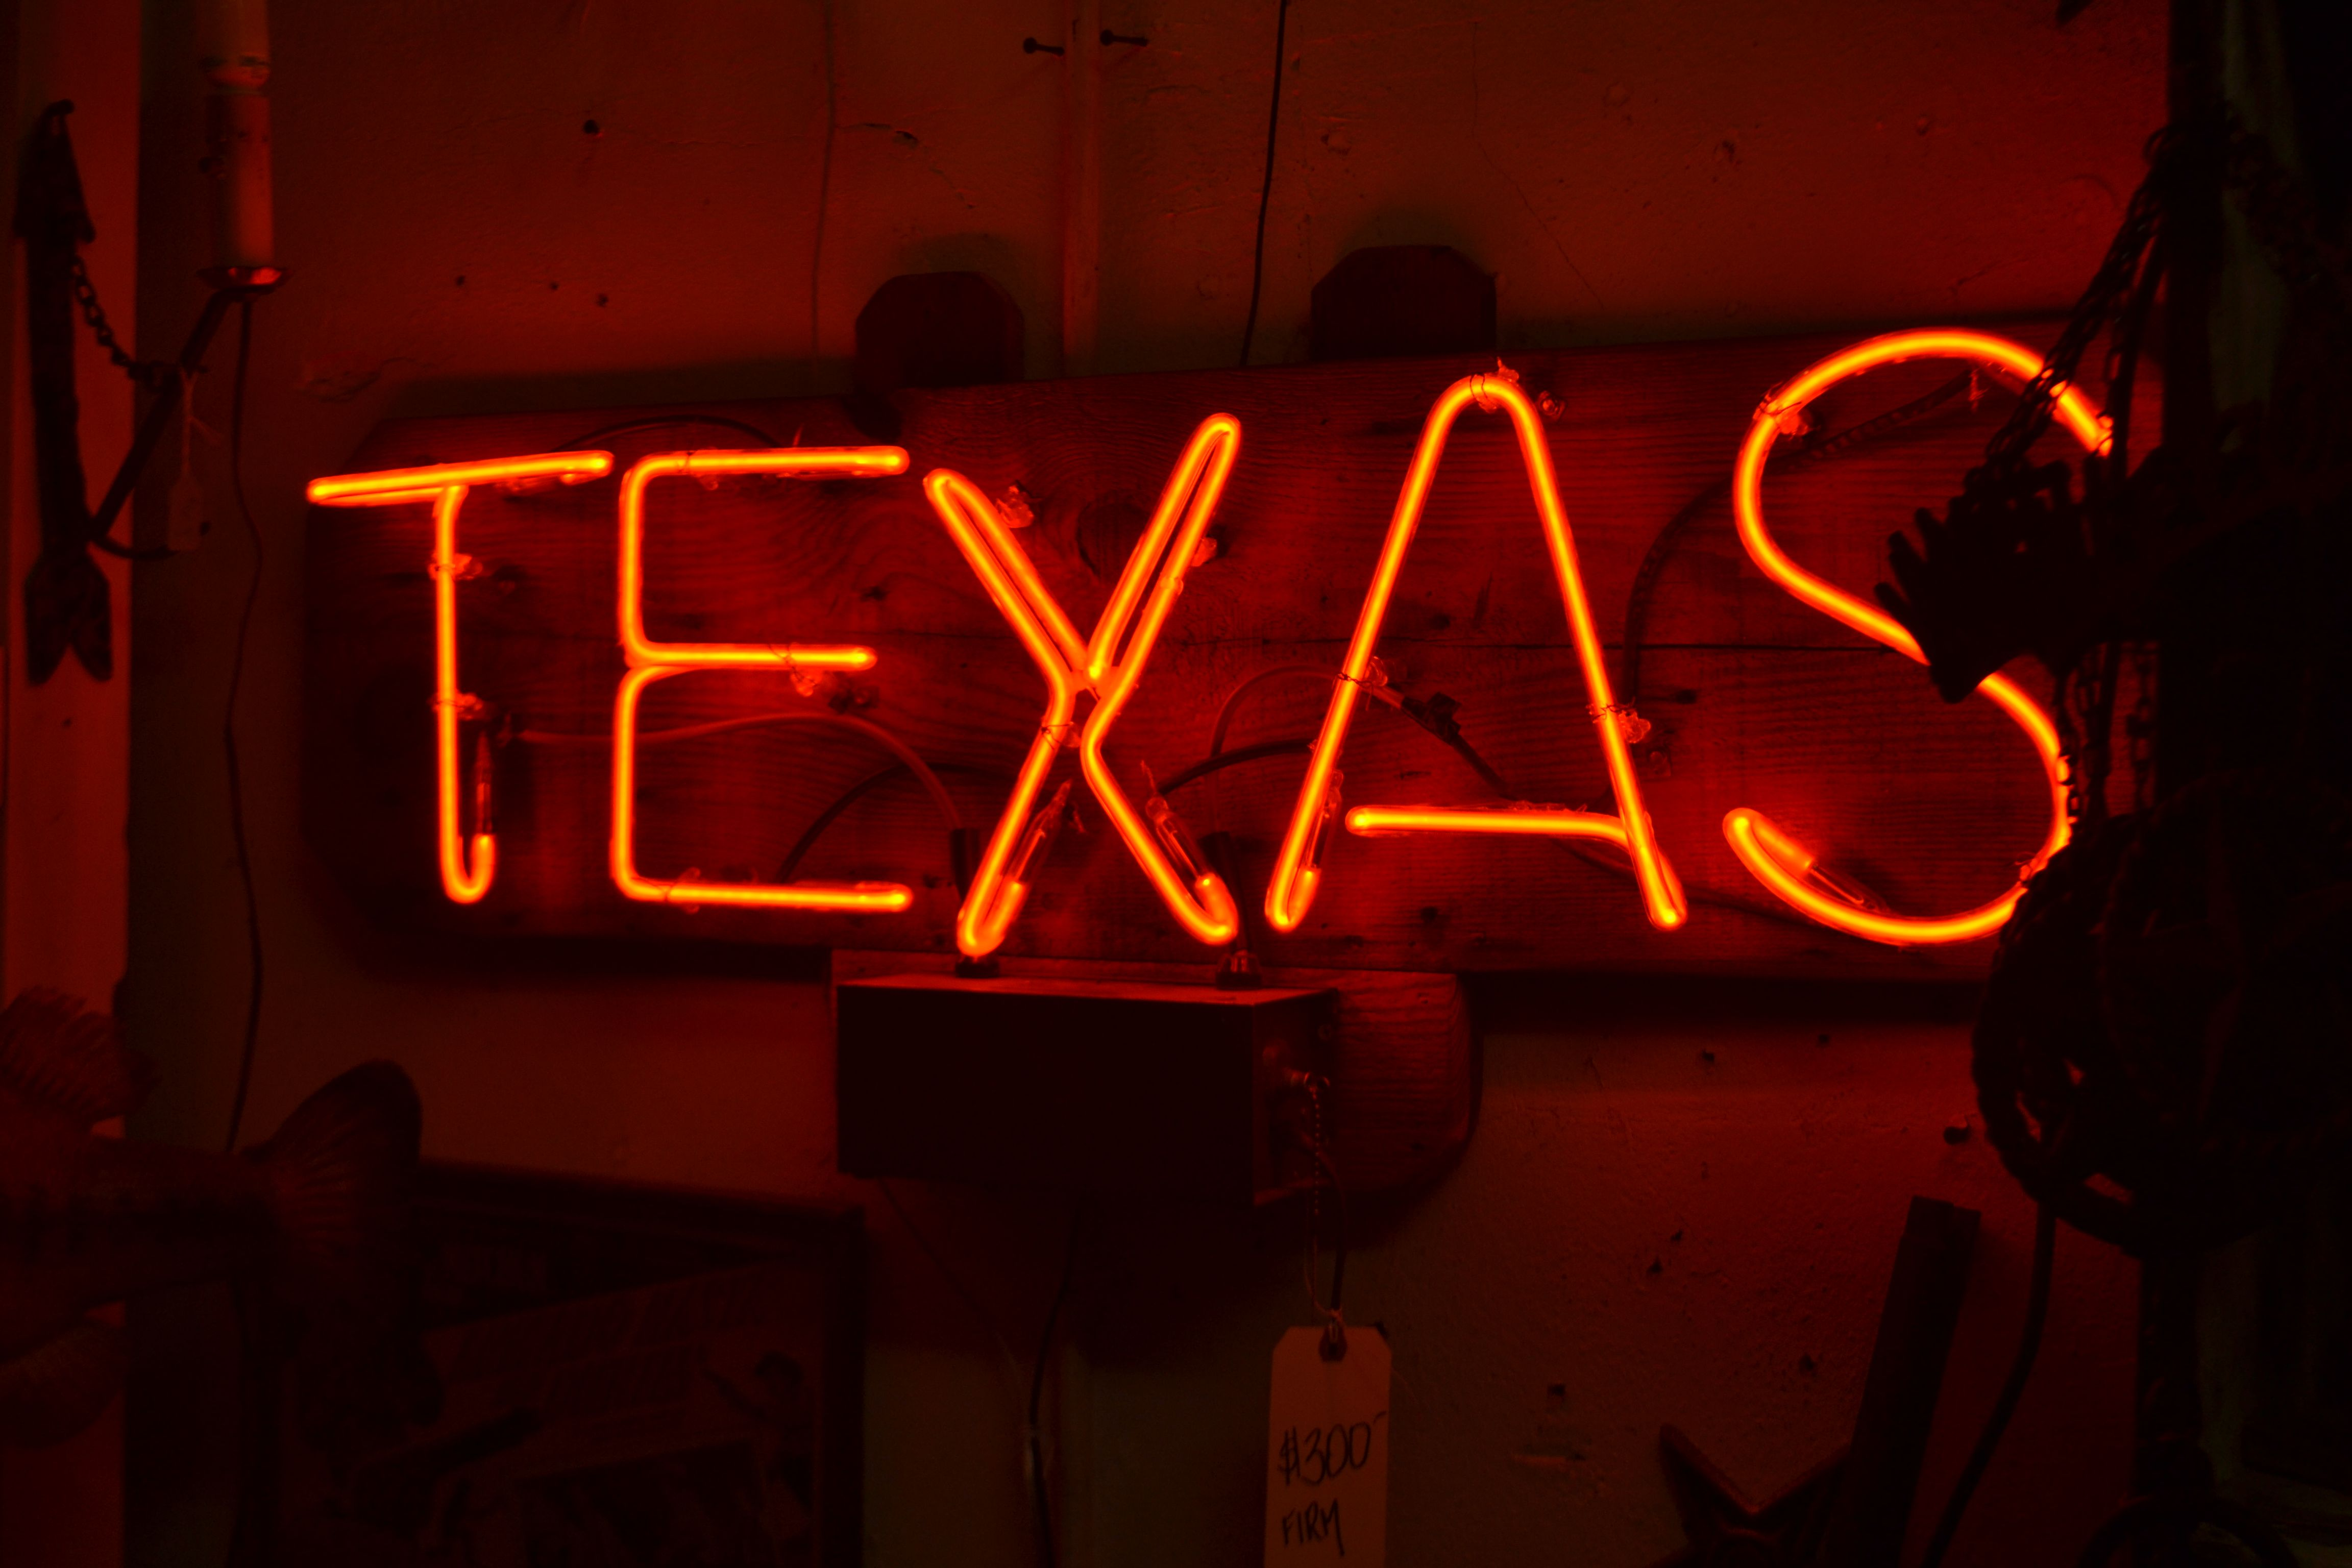 Home Supply 4 Texas Ftw Places To Go Neon Signs Neon Neon